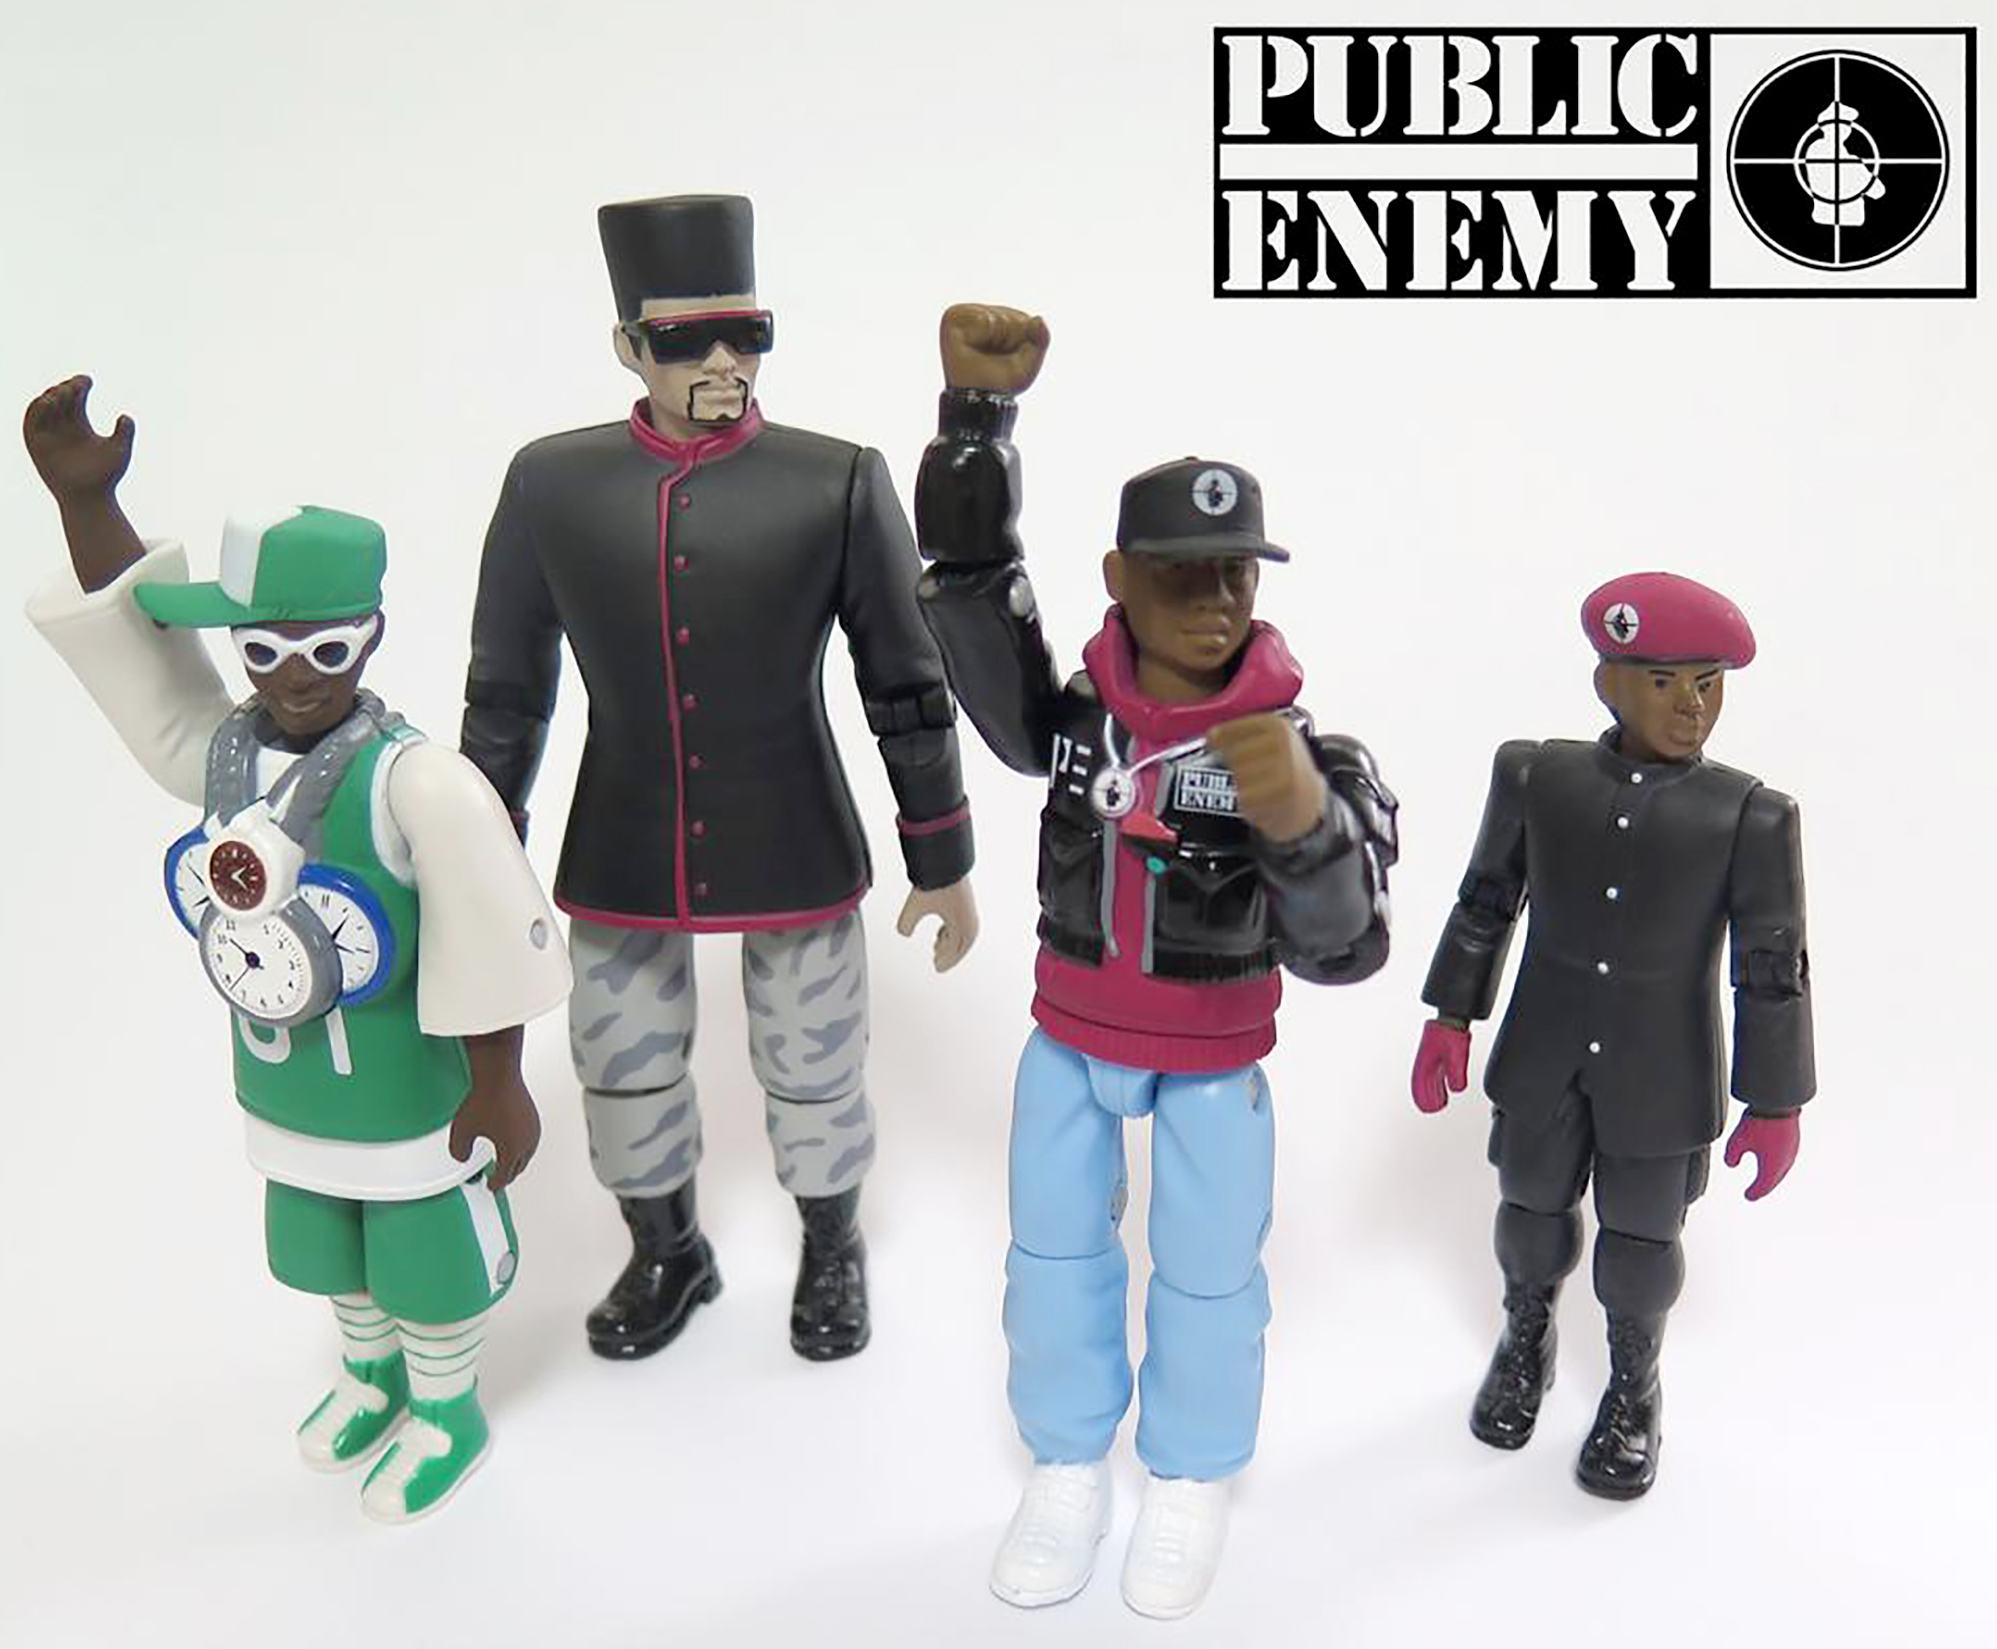 public-enemy-action-figure-set-03